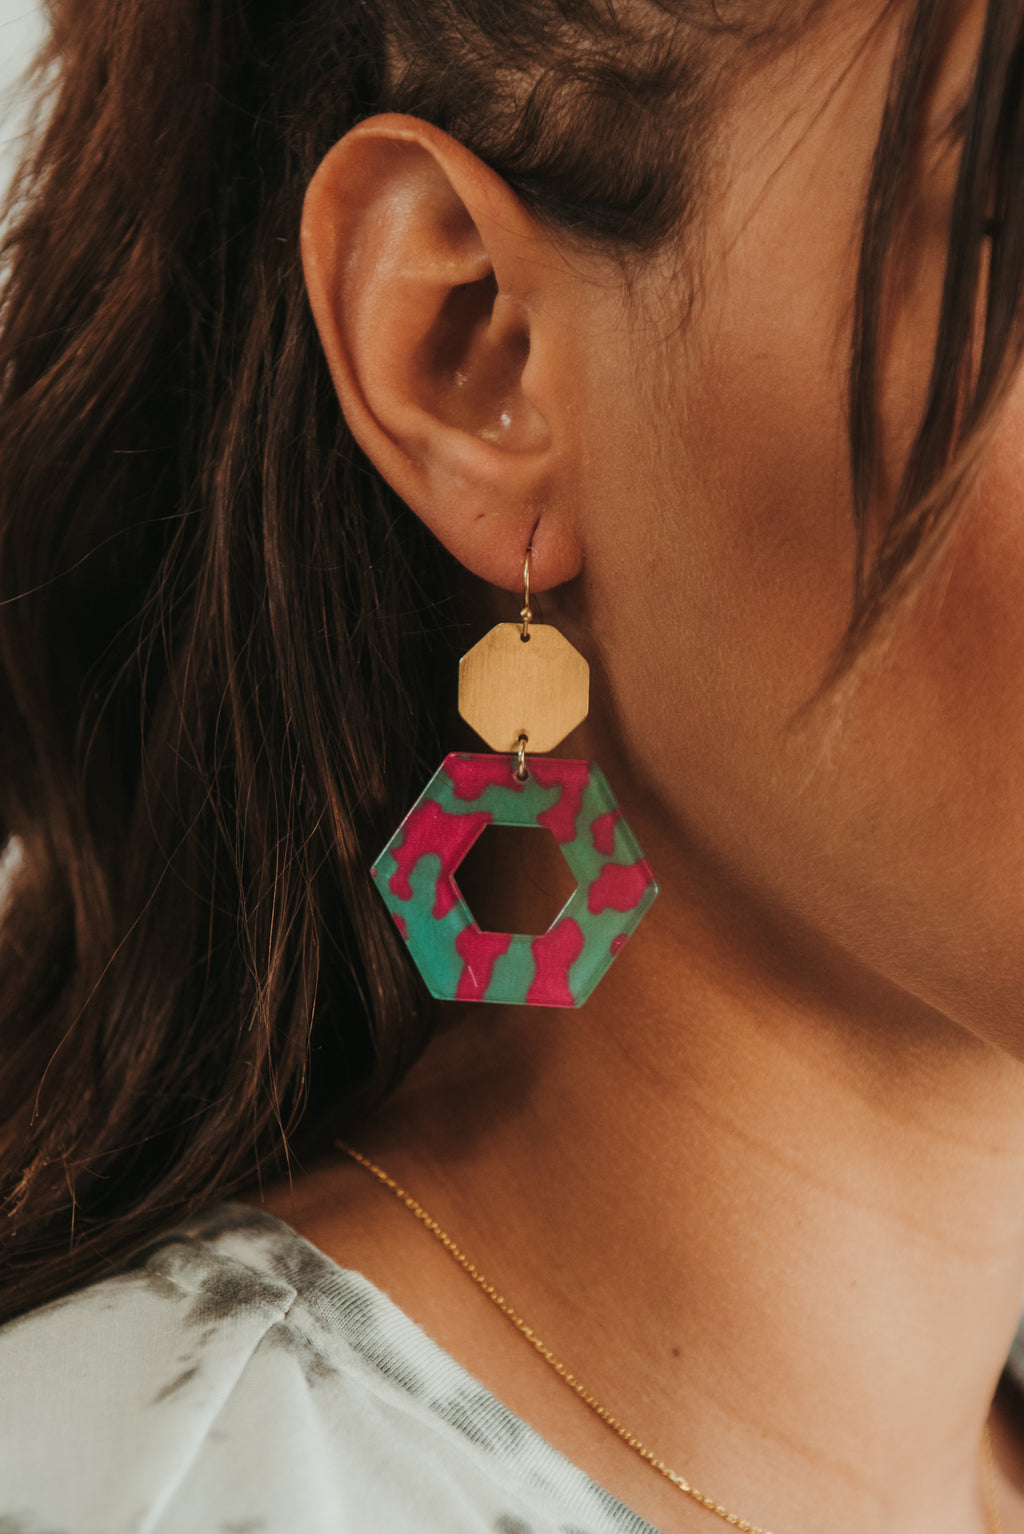 Pink & Teal Acrylic Earrings